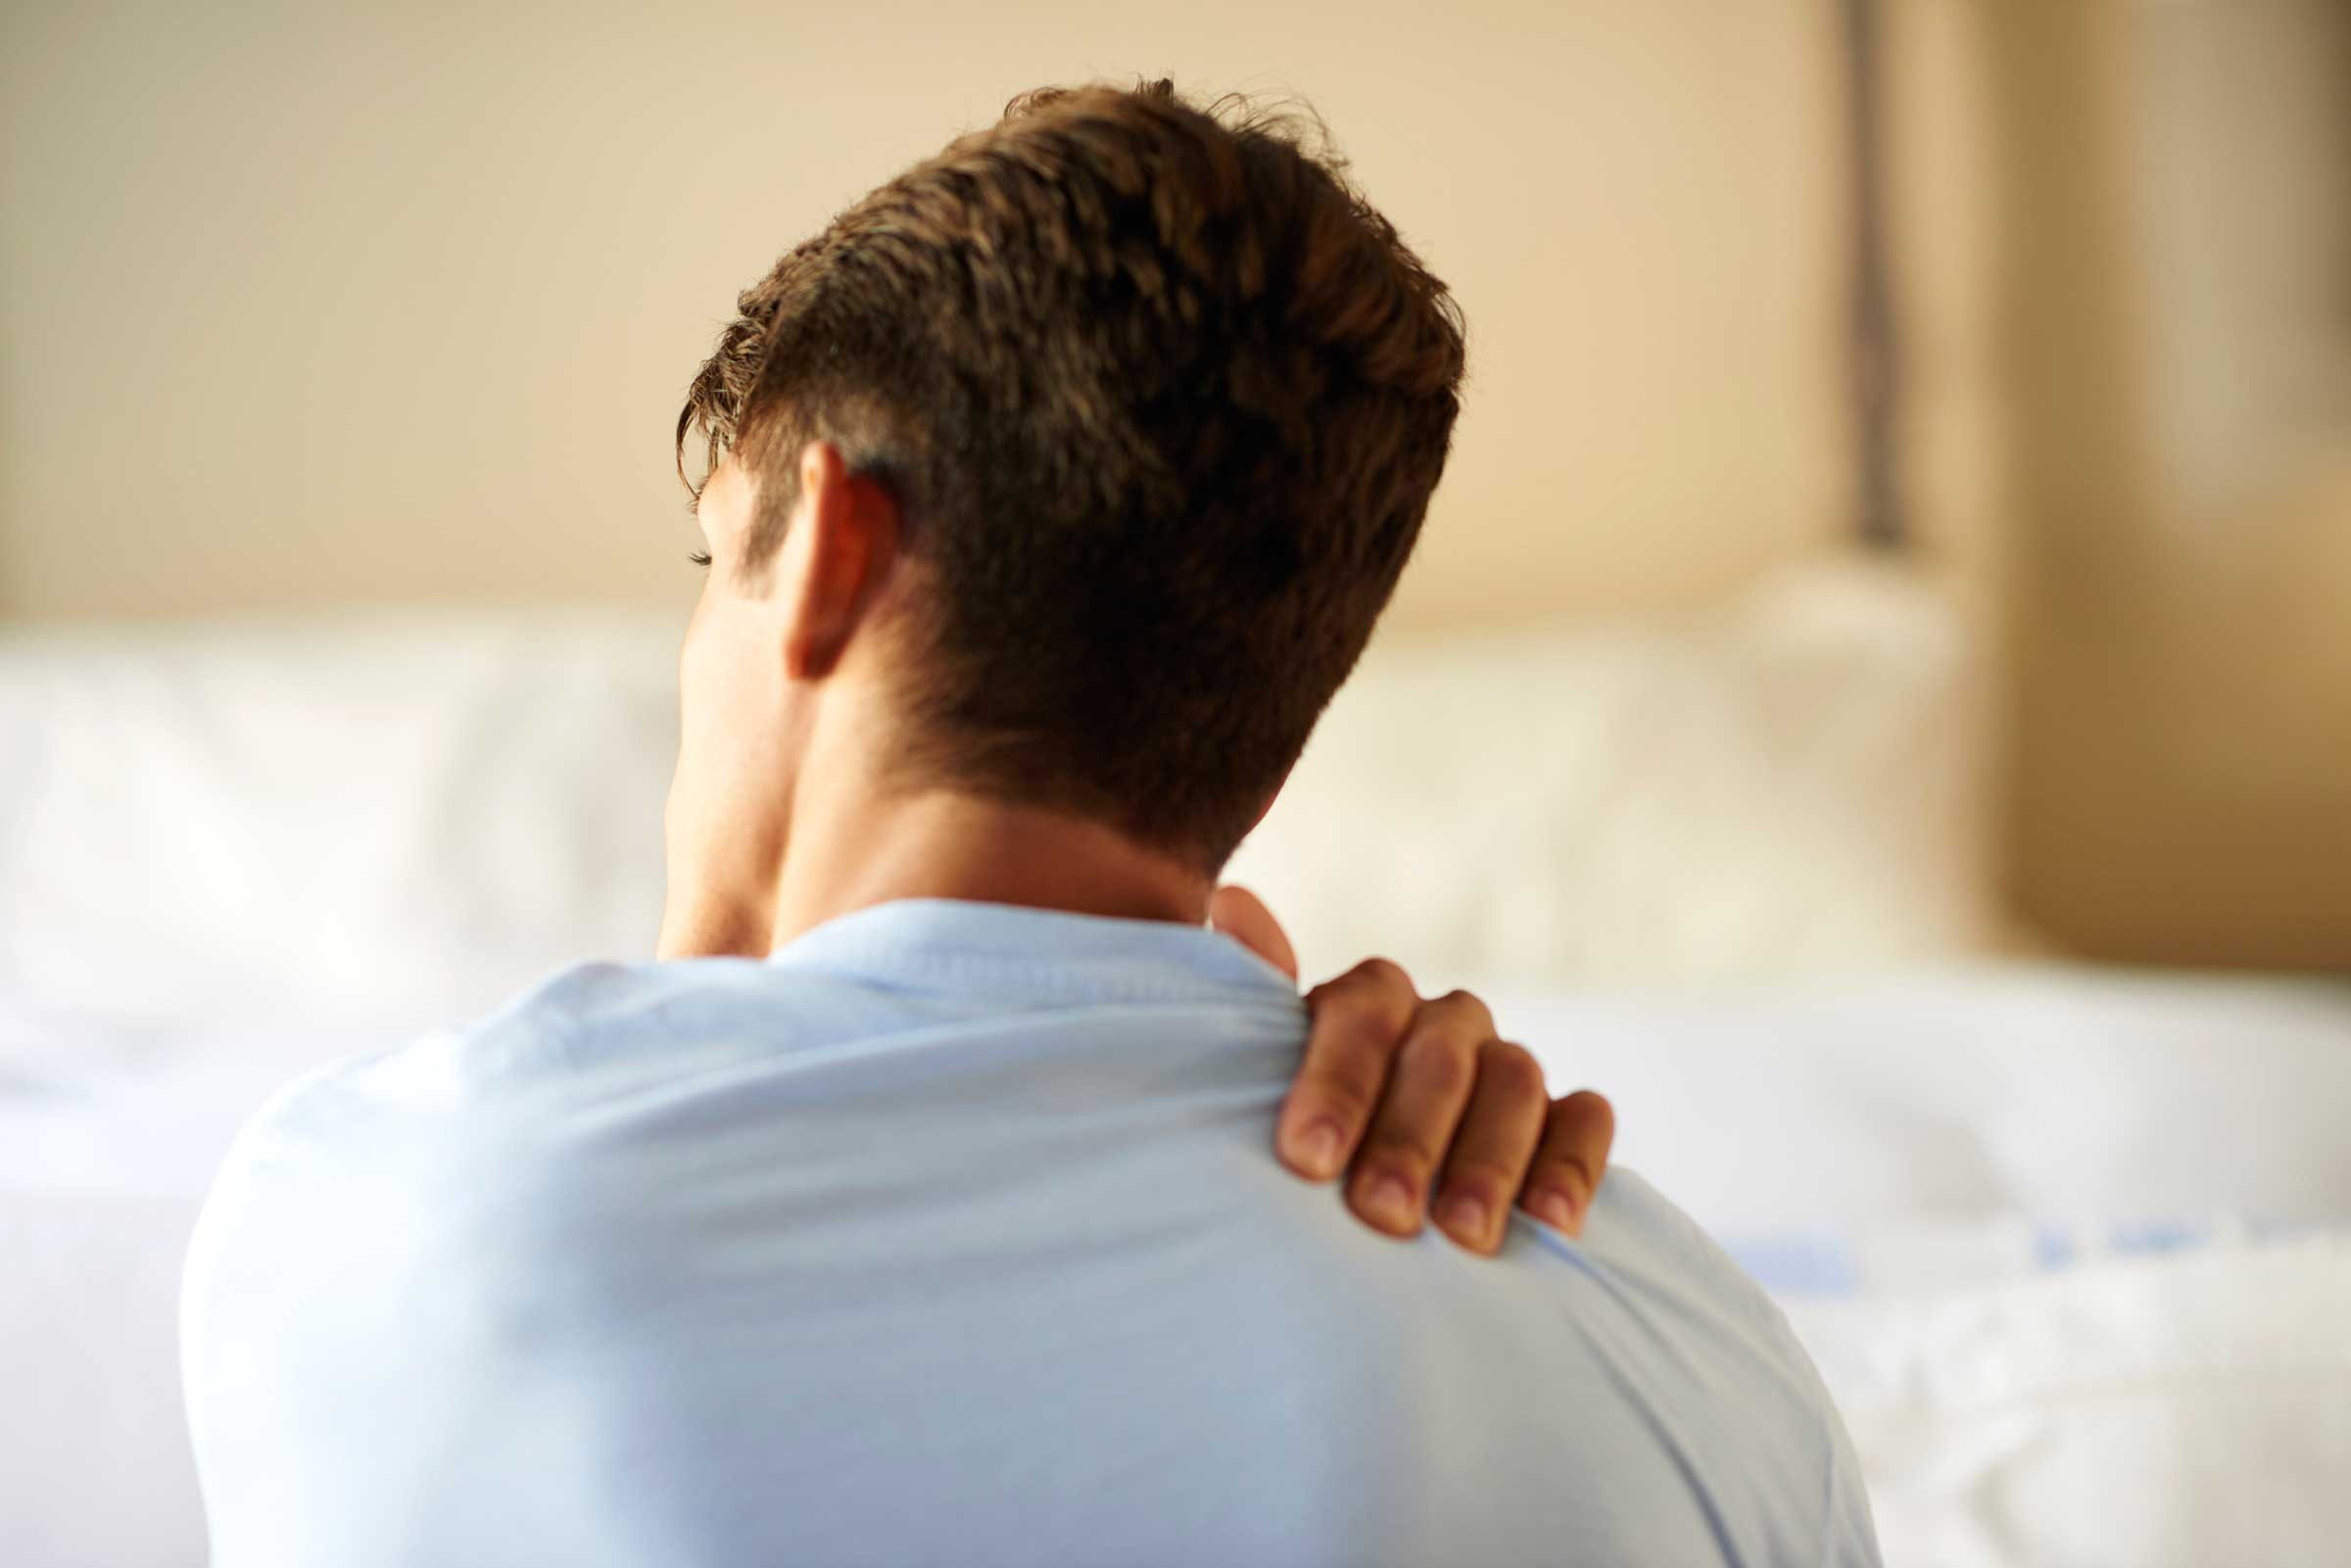 Muscle pain relief, man holds sore shoulder